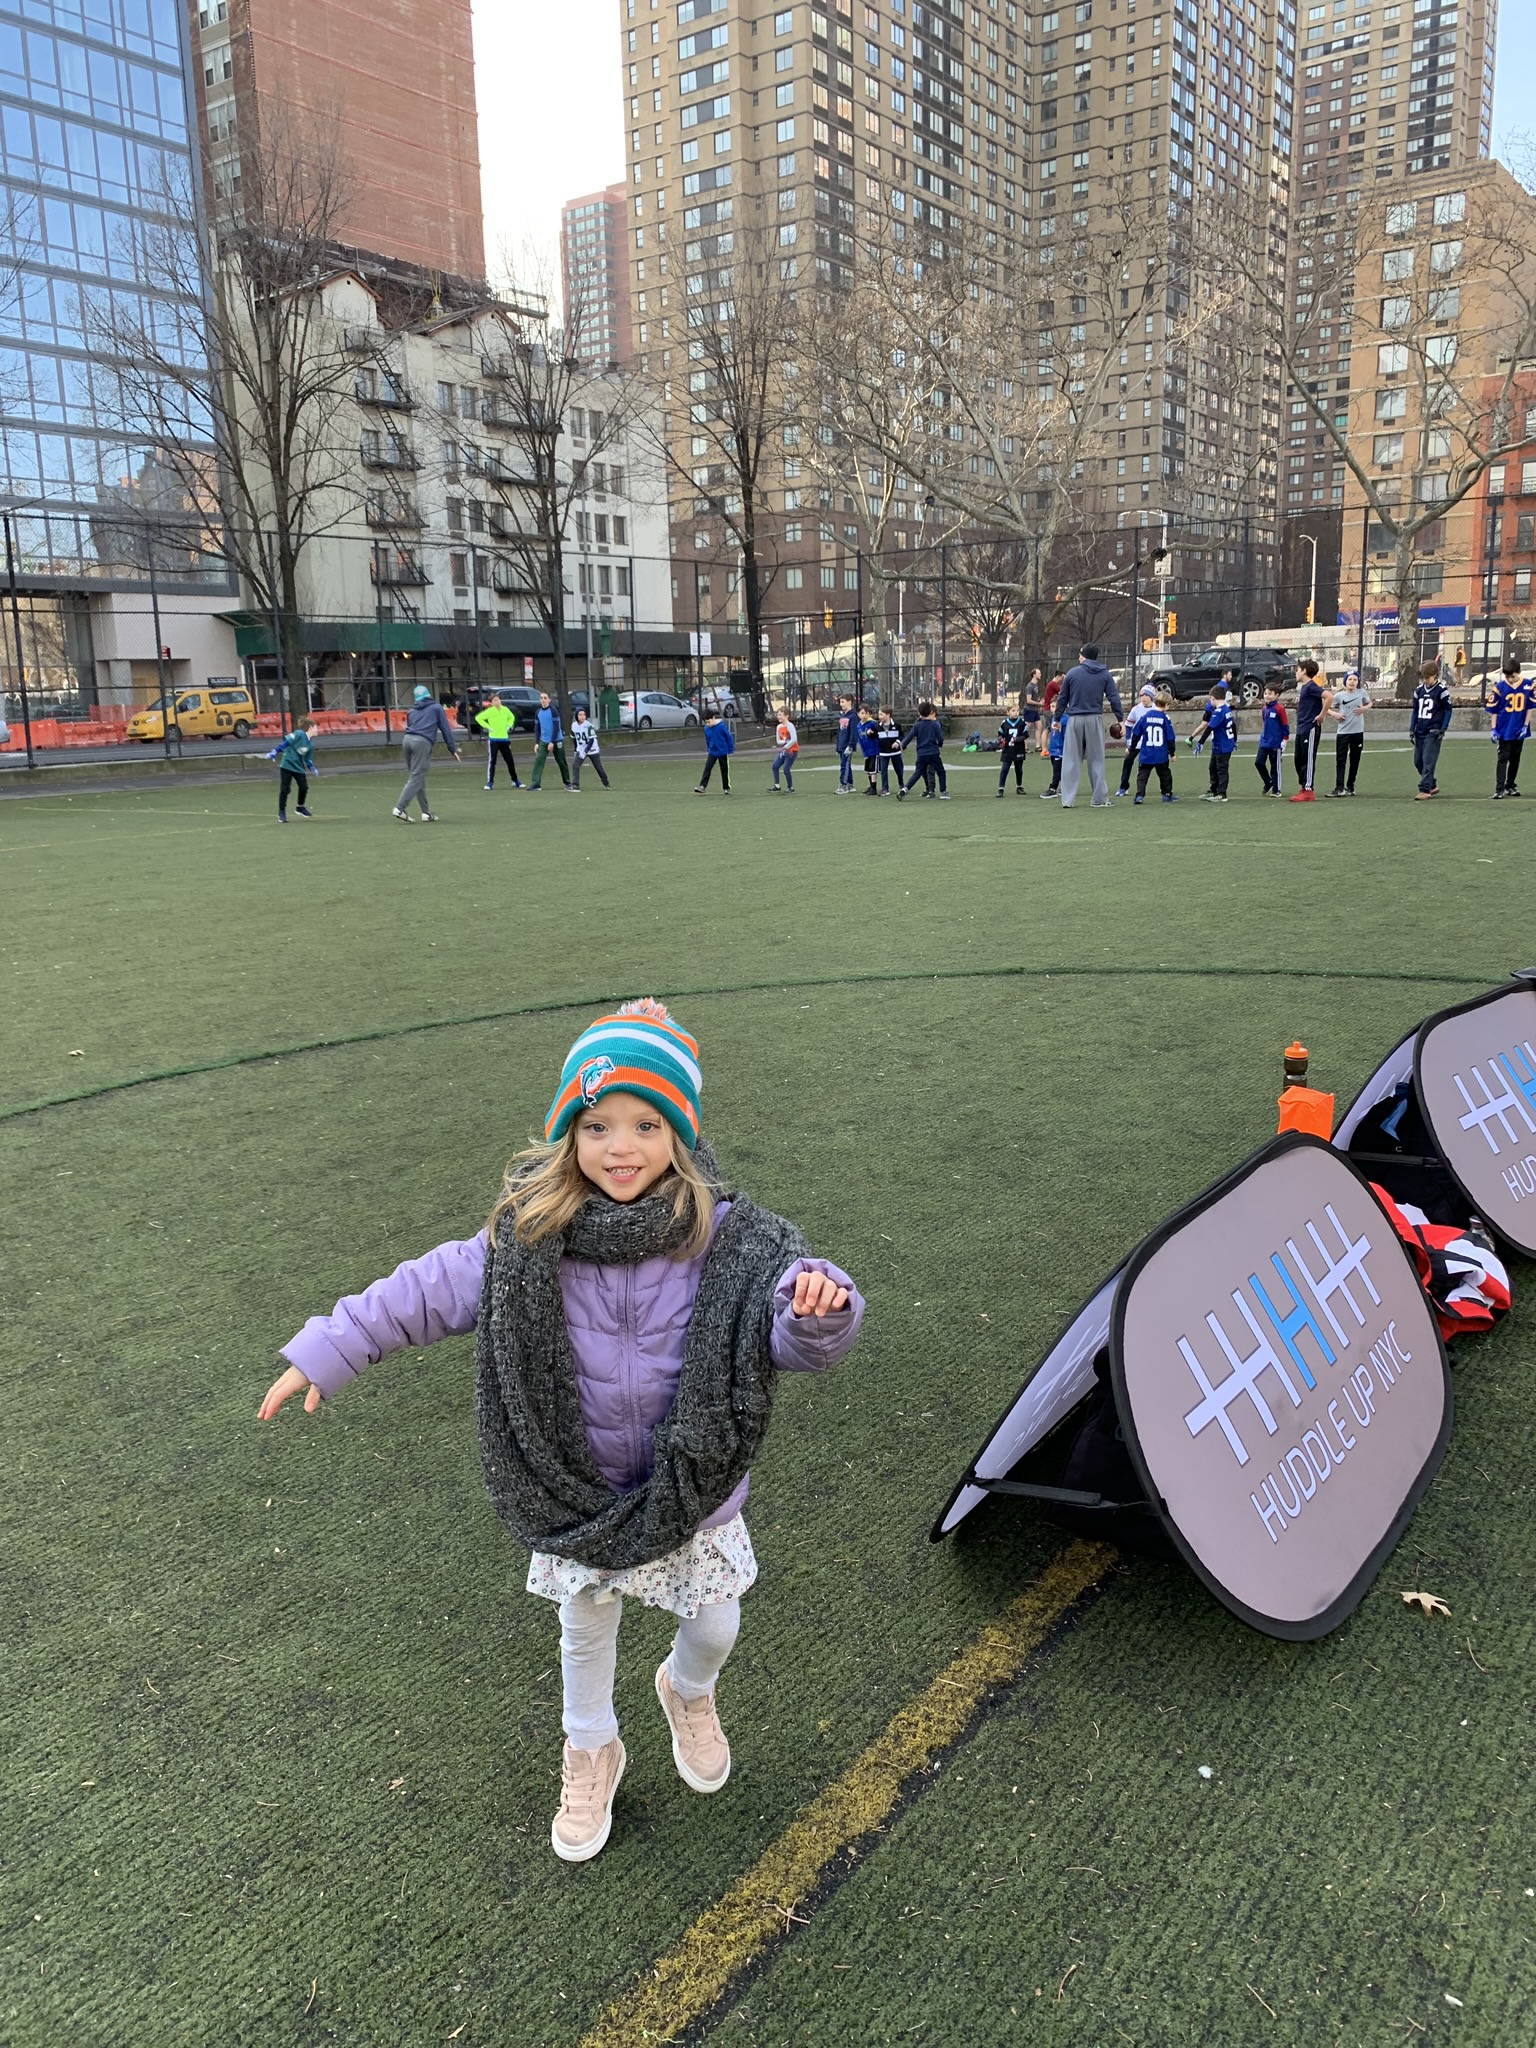 So proud of her Dad the coach! If you ask her what Daddy's favorite football team is, now she says: Huddle Up NYC! =)